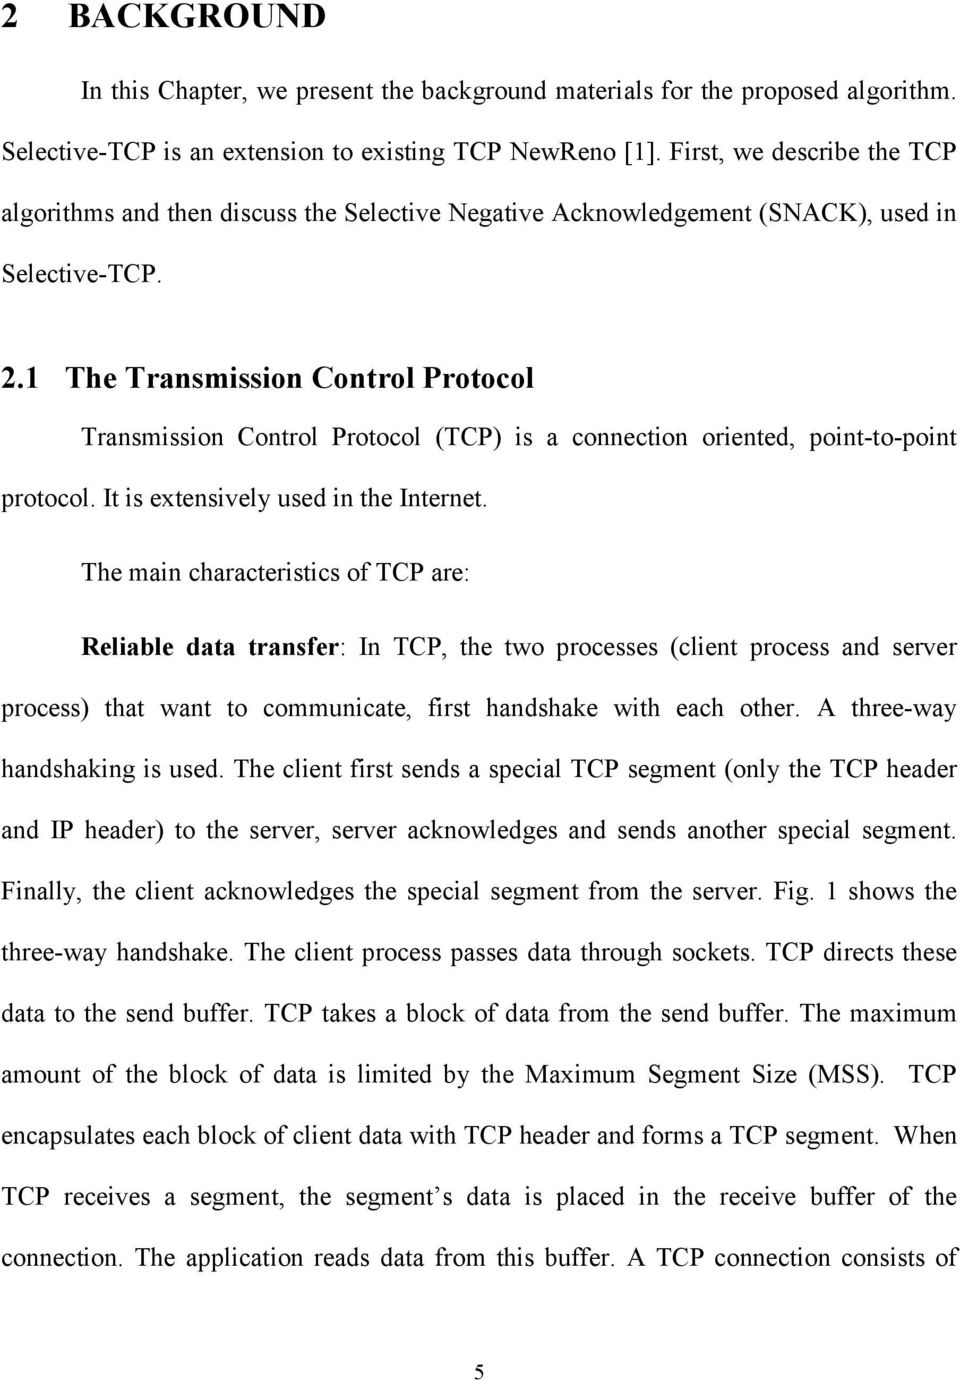 1 The Transmission Control Protocol Transmission Control Protocol (TCP) is a connection oriented, point-to-point protocol. It is extensively used in the Internet.